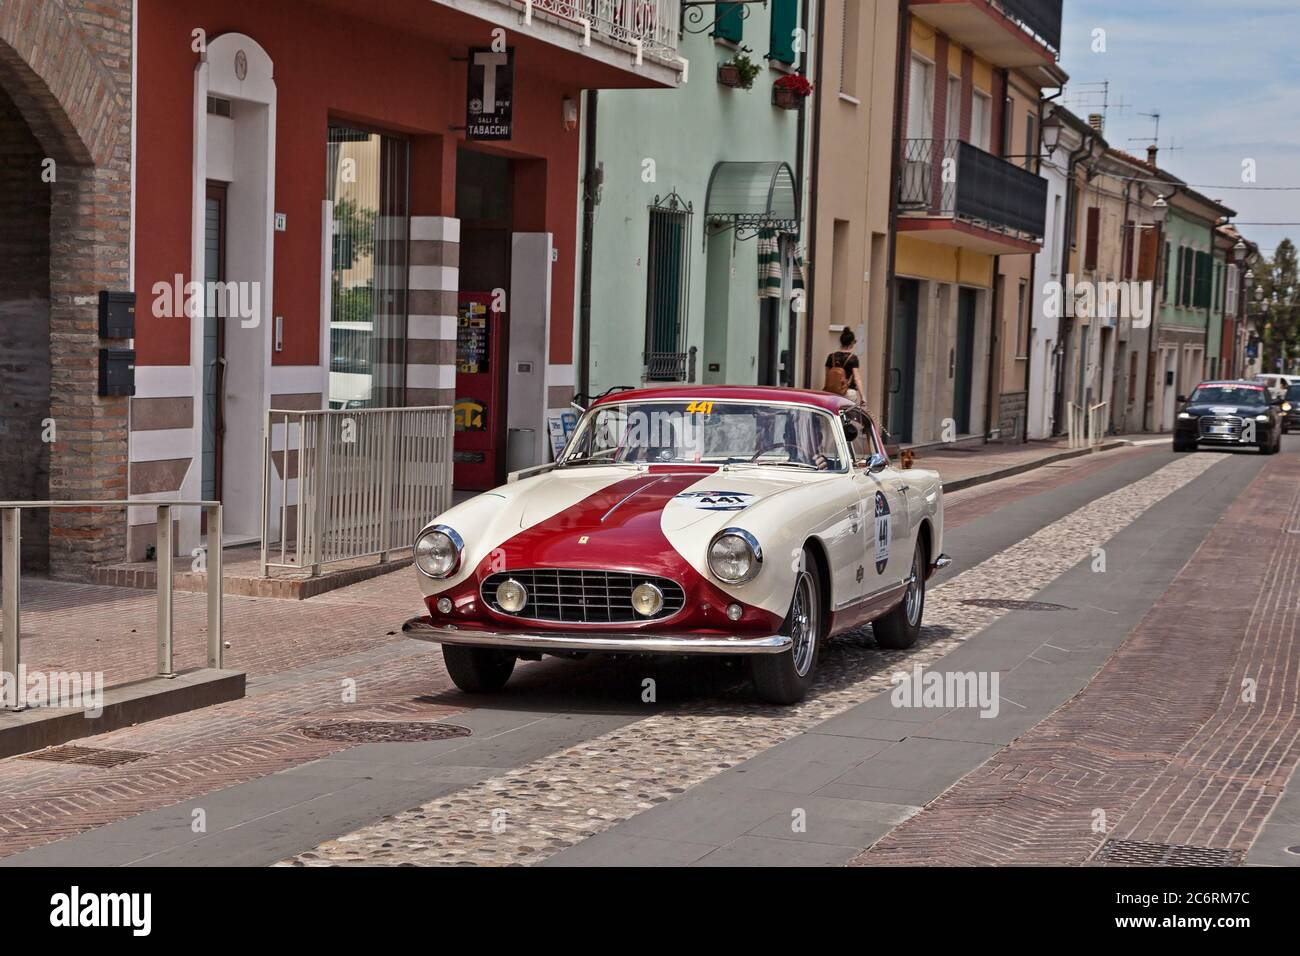 Vintage Ferrari Car High Resolution Stock Photography And Images Alamy